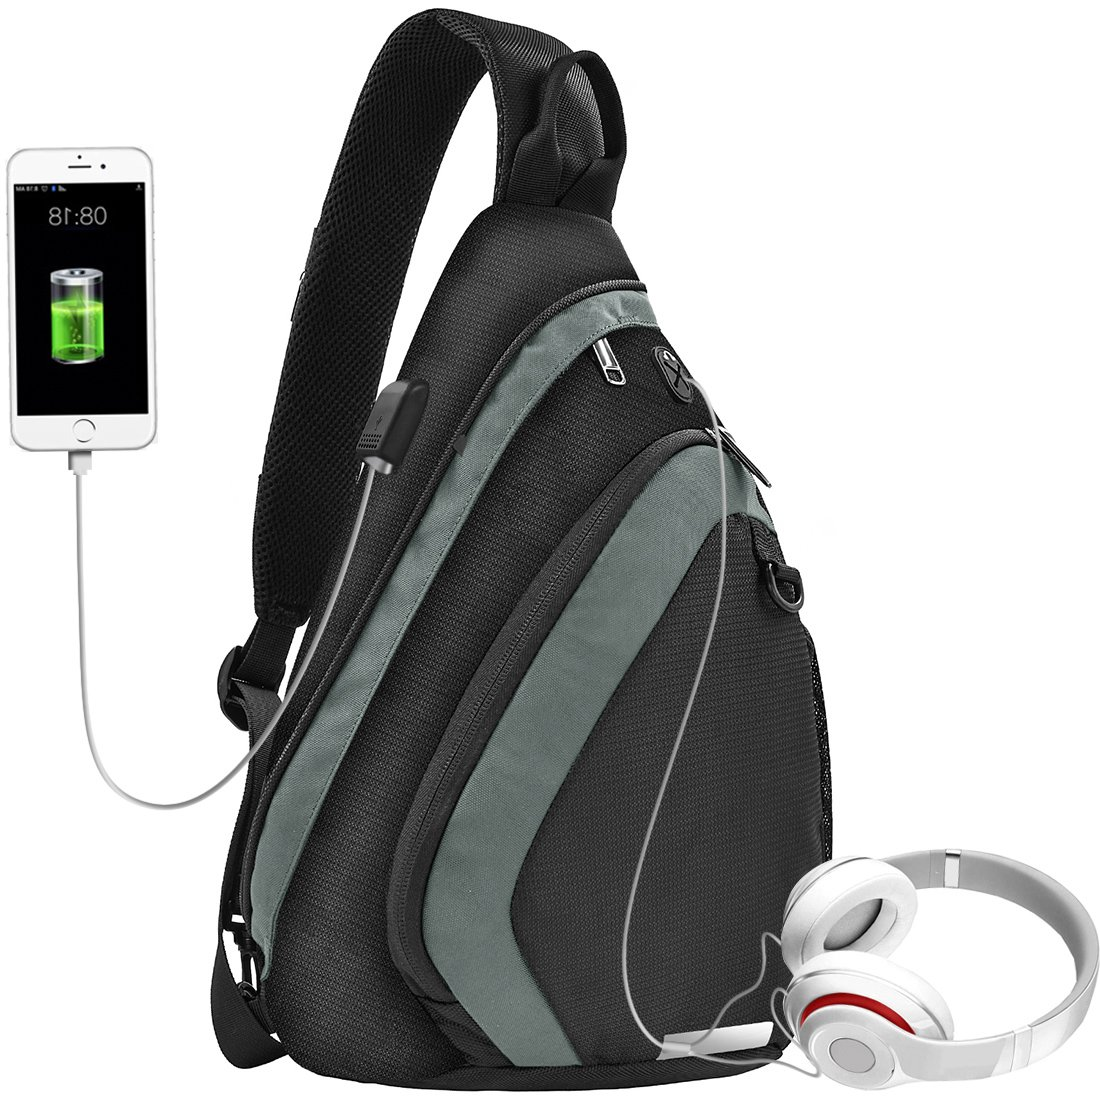 Sling Bag Water-Resistant Shoulder Chest Crossbody bags Lightweight Travel Hiking Multipurpose Daypacks with USB Charging Port Anti Theft Outdoor Backpack Up to 10.5 Inch Tablet for Men Women Green